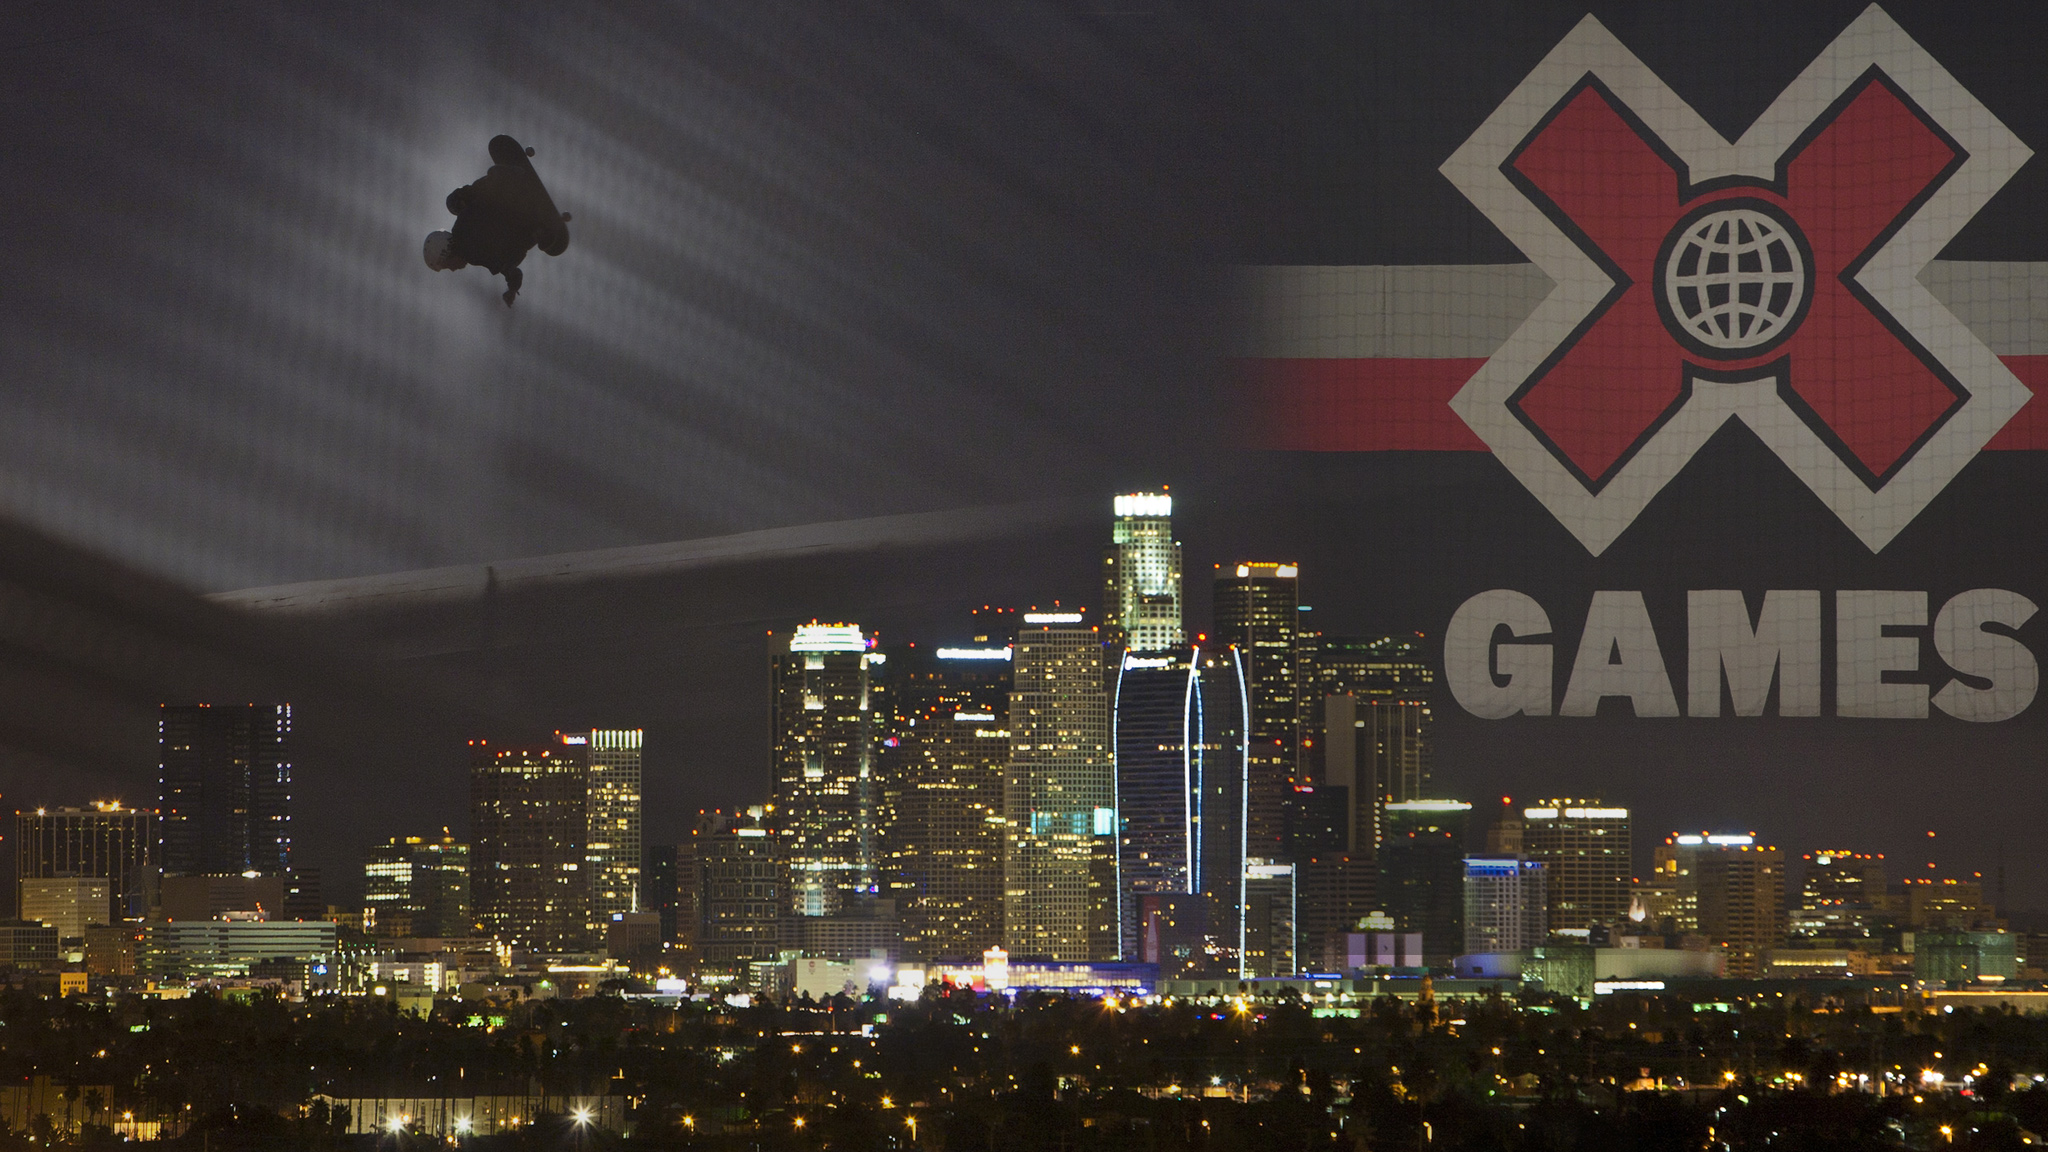 Before the X Games bids farewell to Los Angeles, take a minute to reflect back on some of the more memorable highlights from the past 10 years of summer fun in the City of Angels.